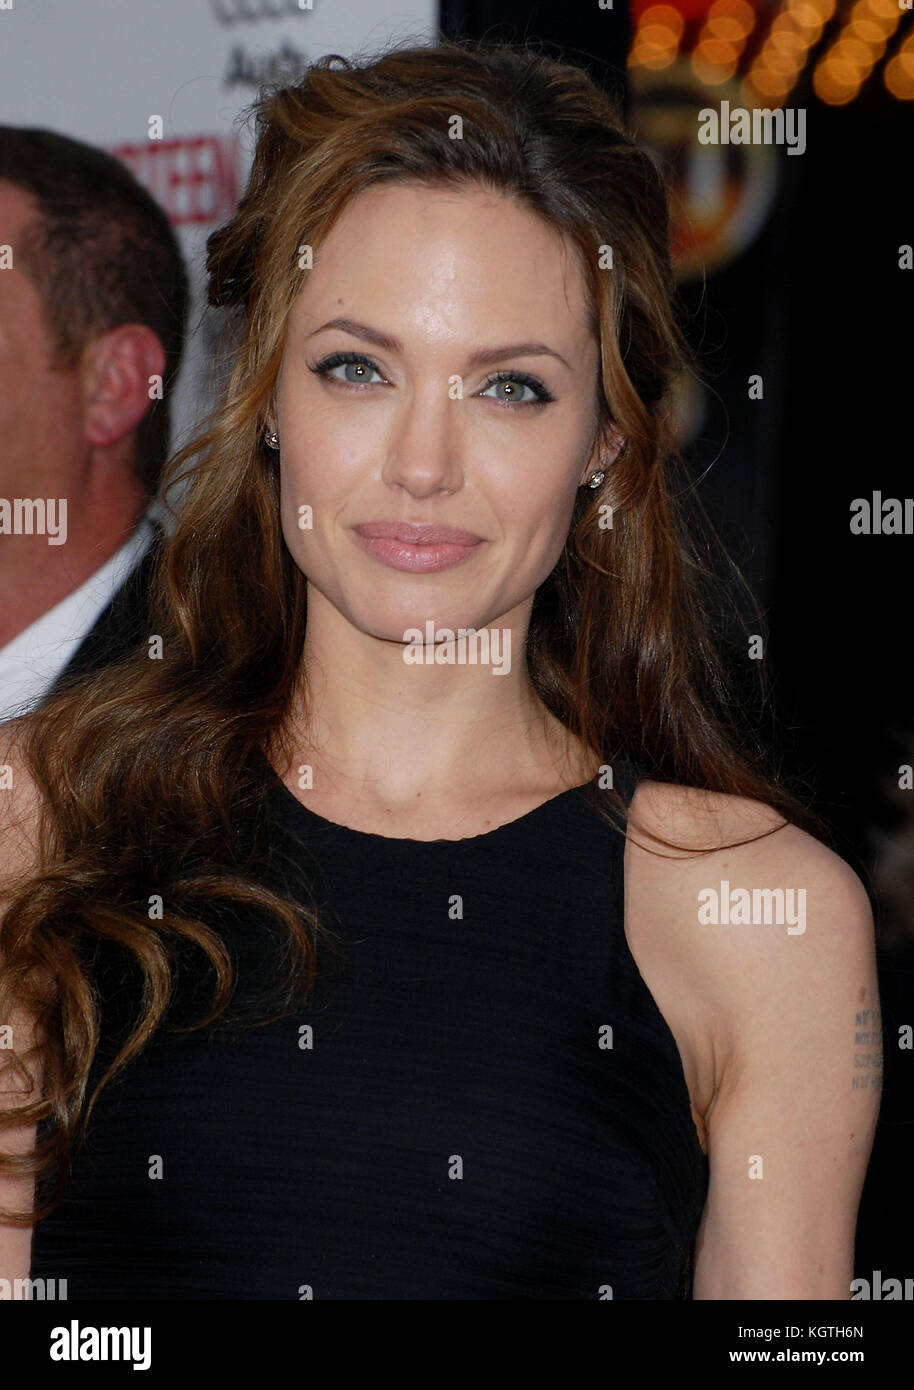 arriving at the OCEAN 13 Premiere at the Chinese Theatre in Los Angeles.  headshot full length 3/4 eye contact smileAngelina - Stock Image